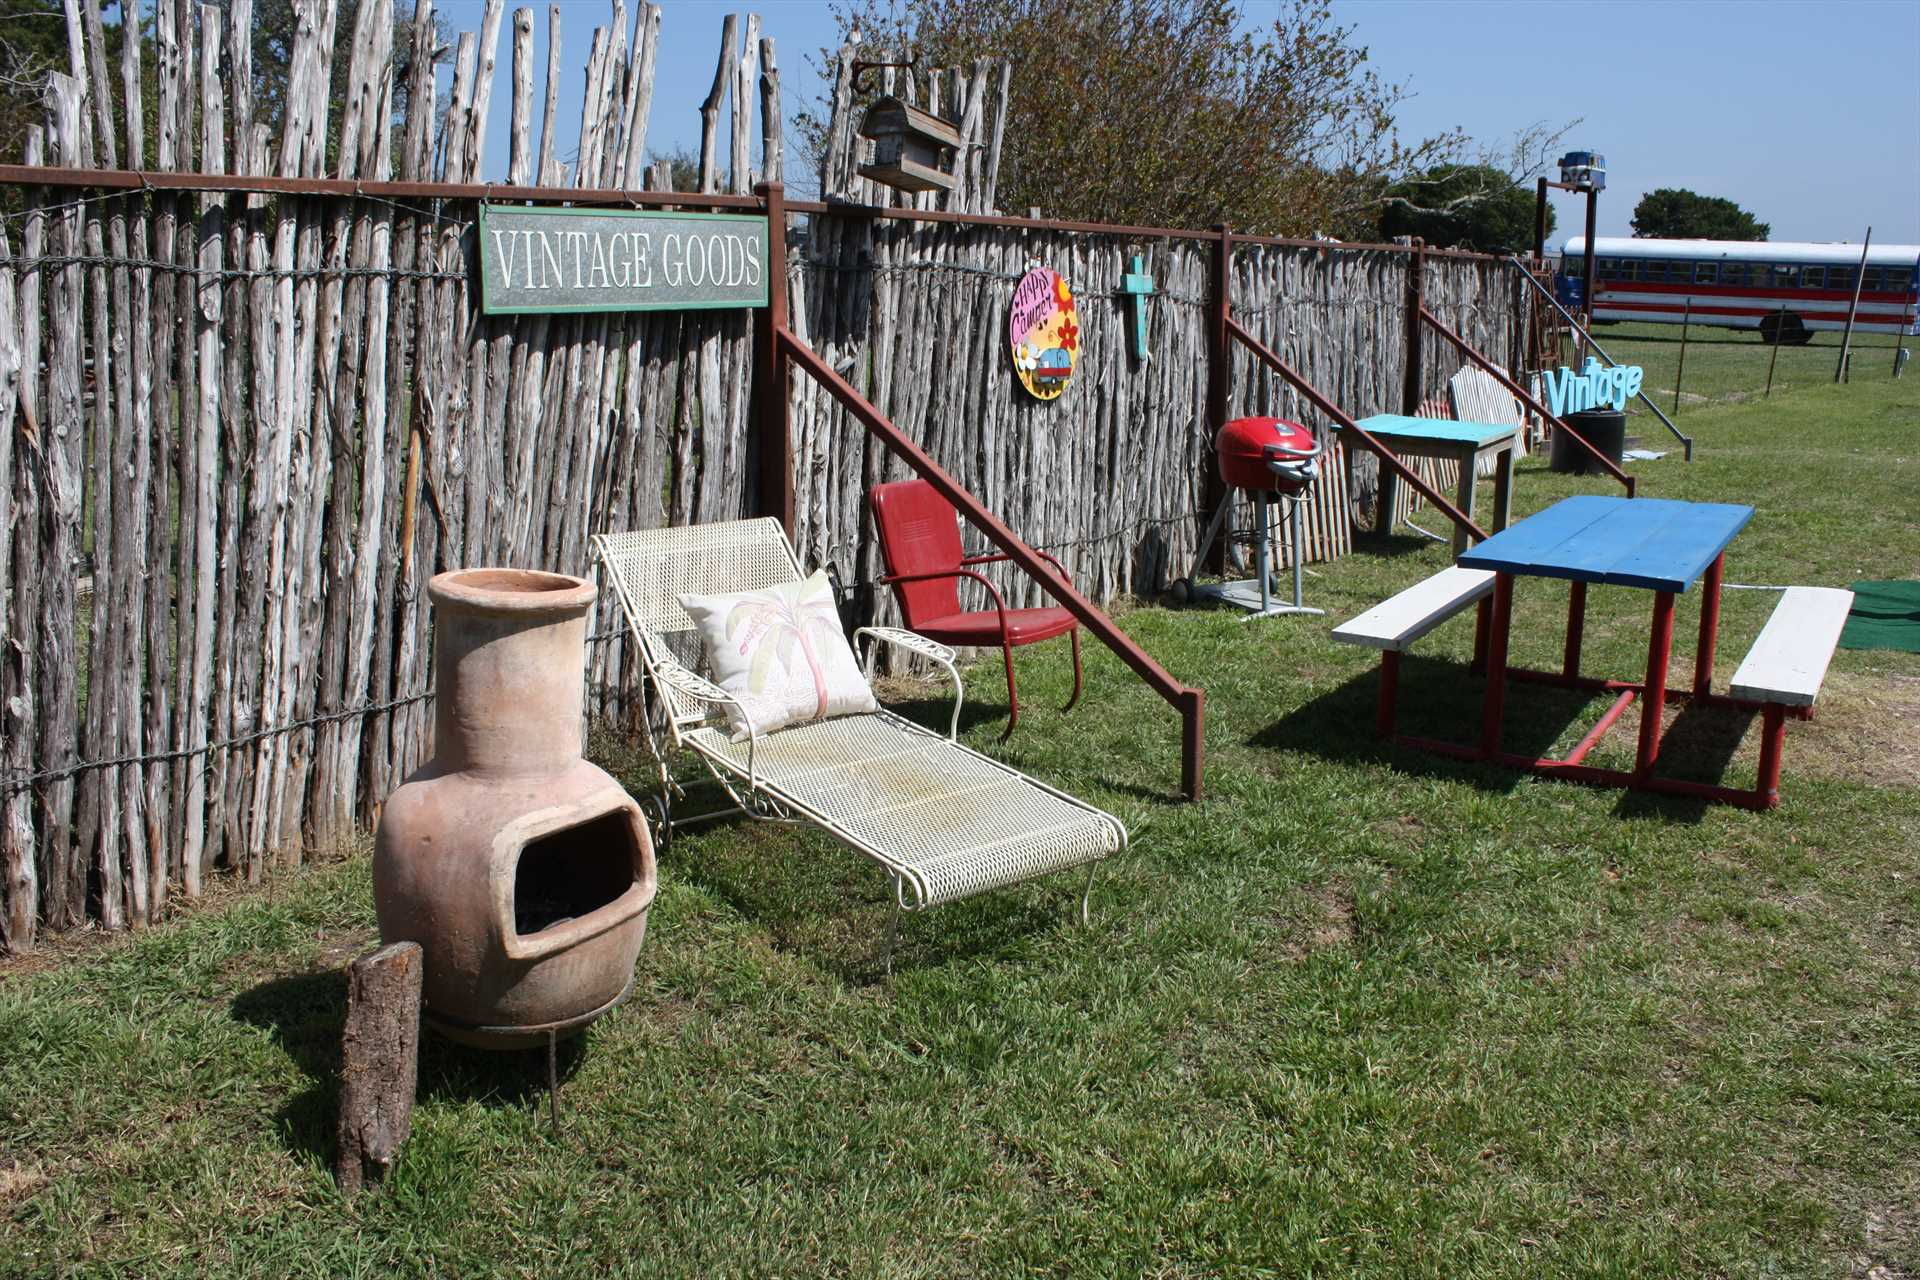 Both charcoal and gas grills are available for a BBQ feast-and be sure to check out the Country Accents antique store on the grounds, too!